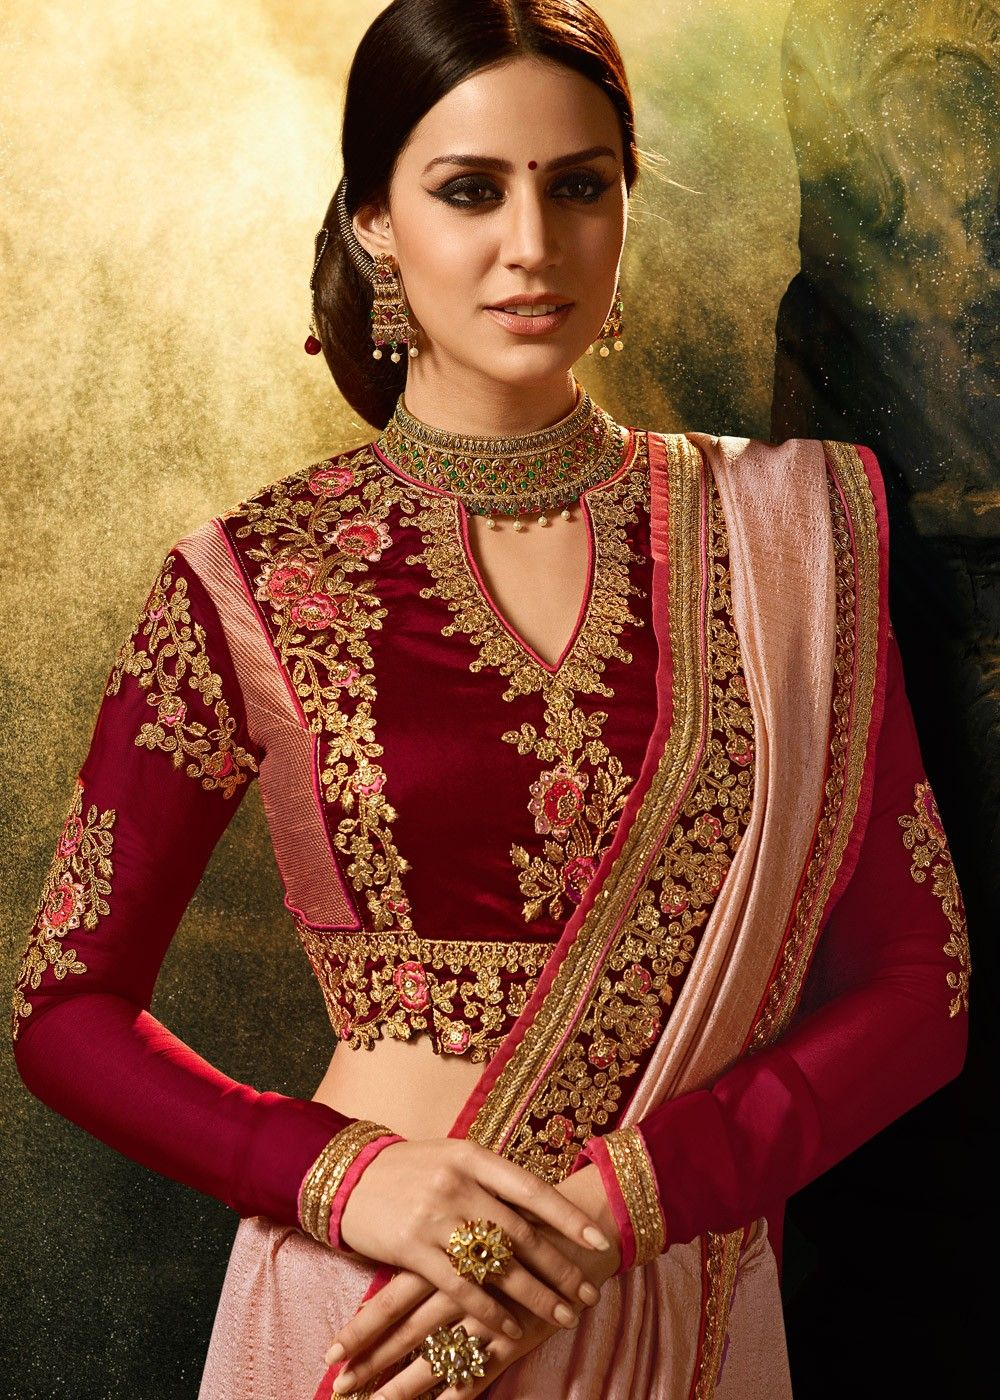 d9bf14229dfe72 Light #pink art #silk #saree enhanced by embroidered lace border  throughout. Accompanied by a maroon art silk #blouse embellished with  #resham #embroidery ...